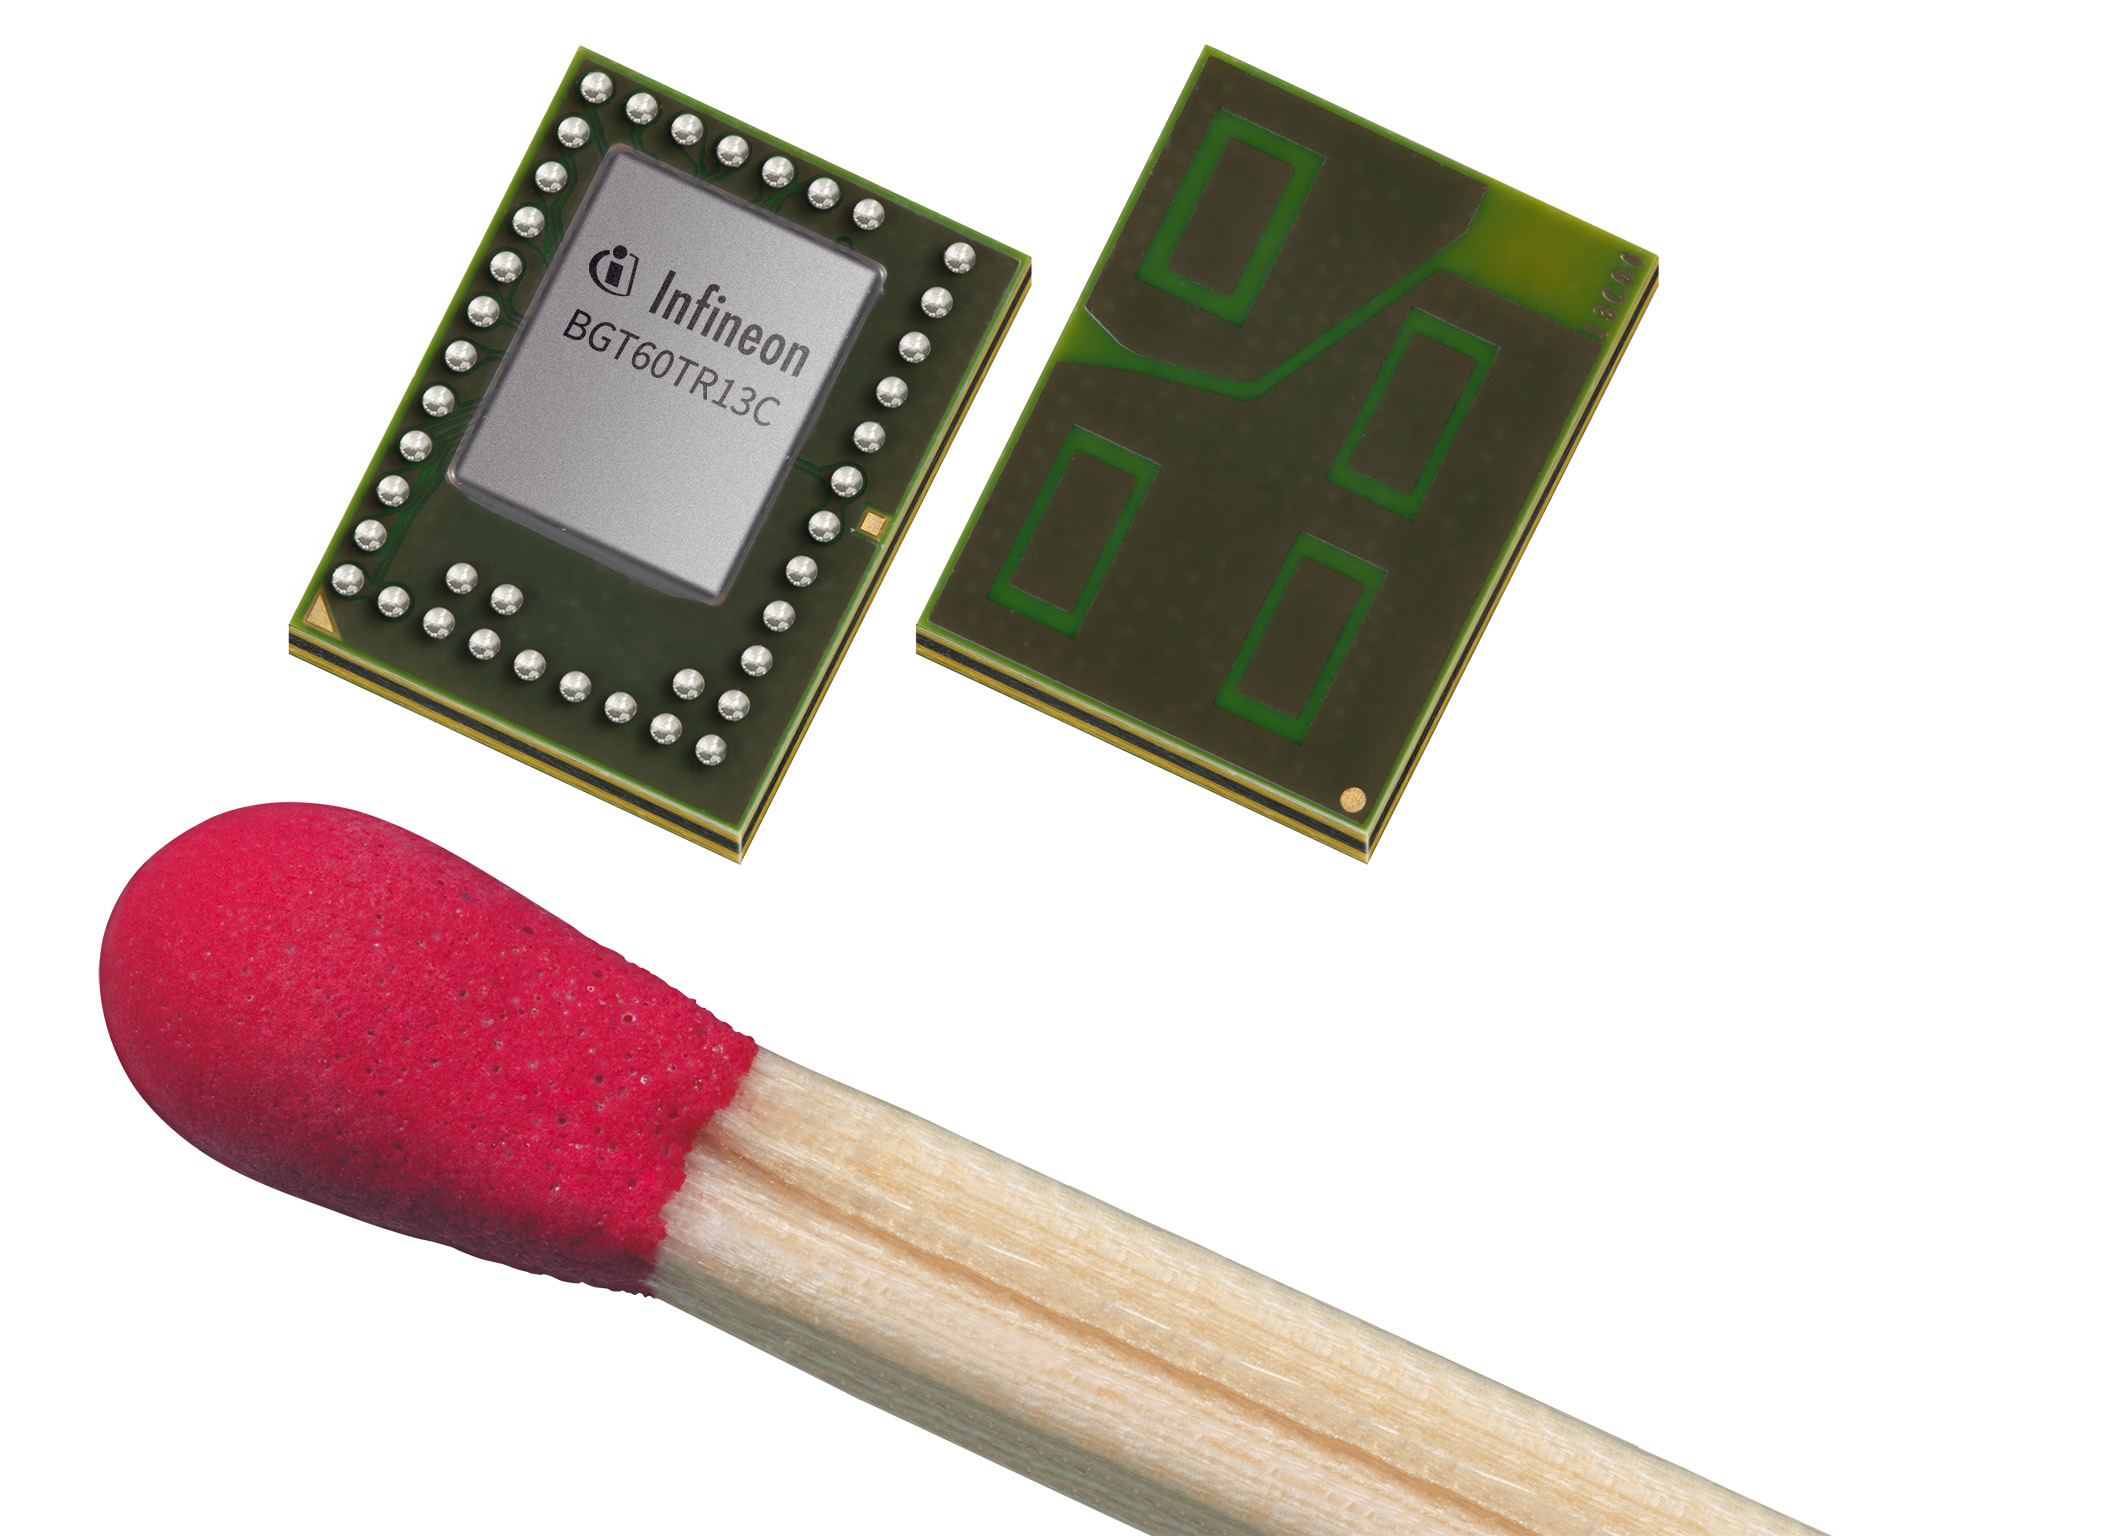 60GHz gesture recognition chip